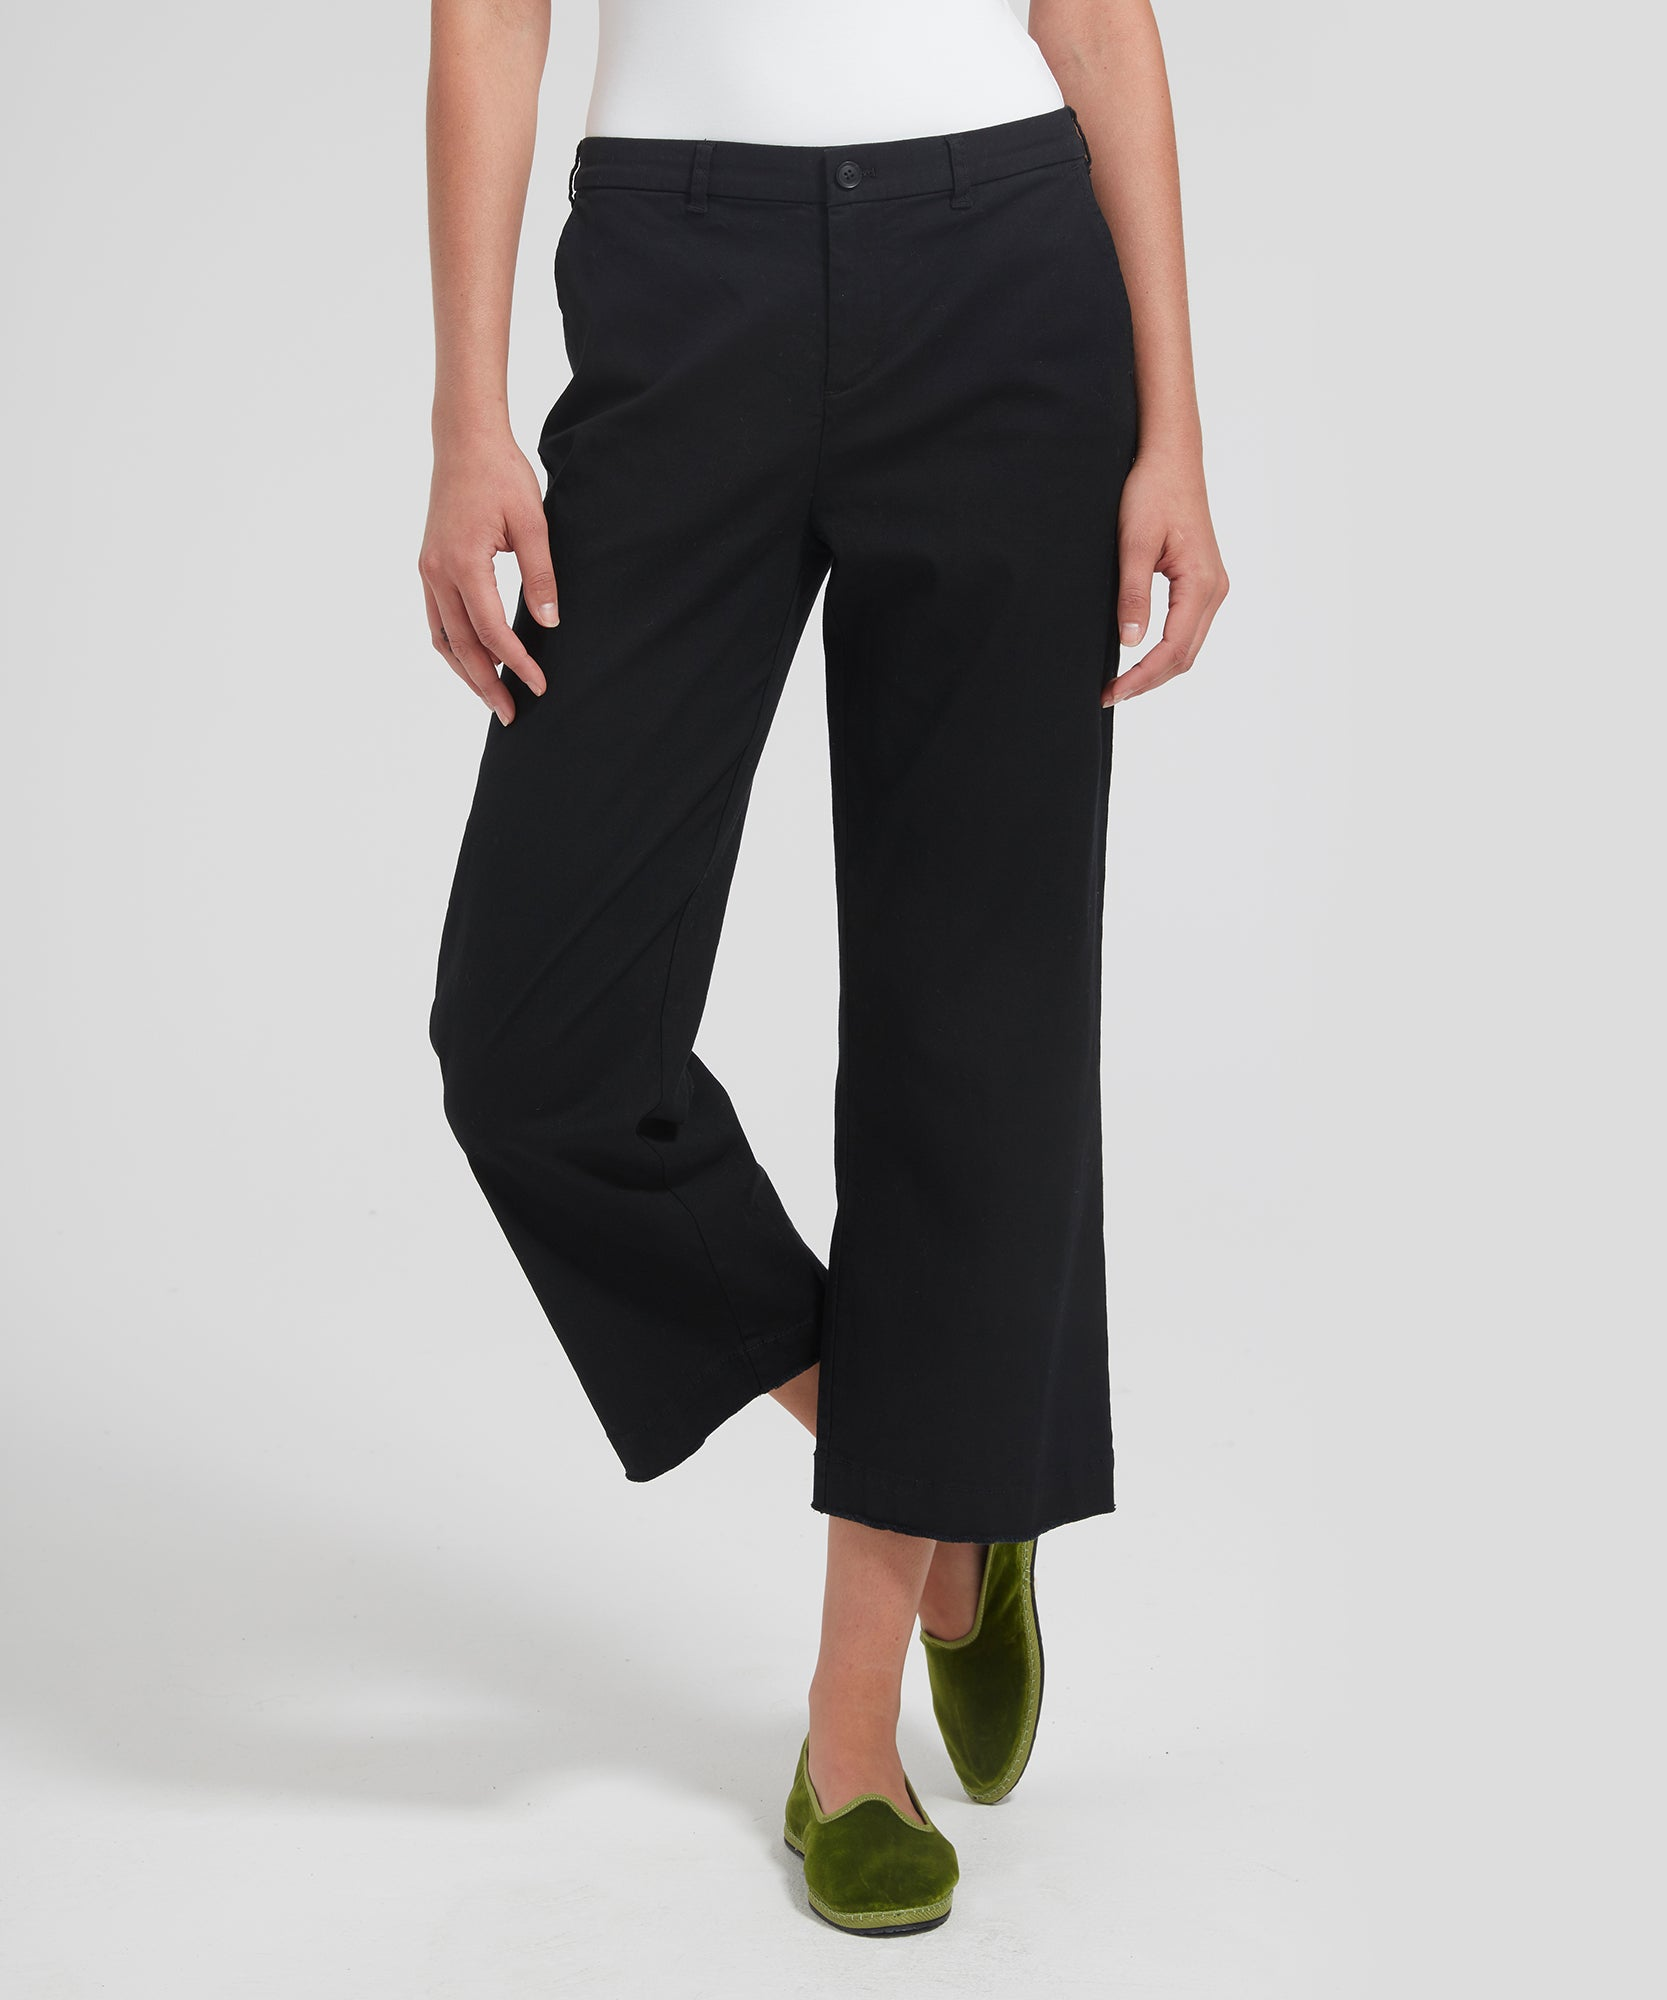 Black Cropped Boyfriend Garment Wash Pants - Women's Casual Pants by ATM Anthony Thomas Melillo